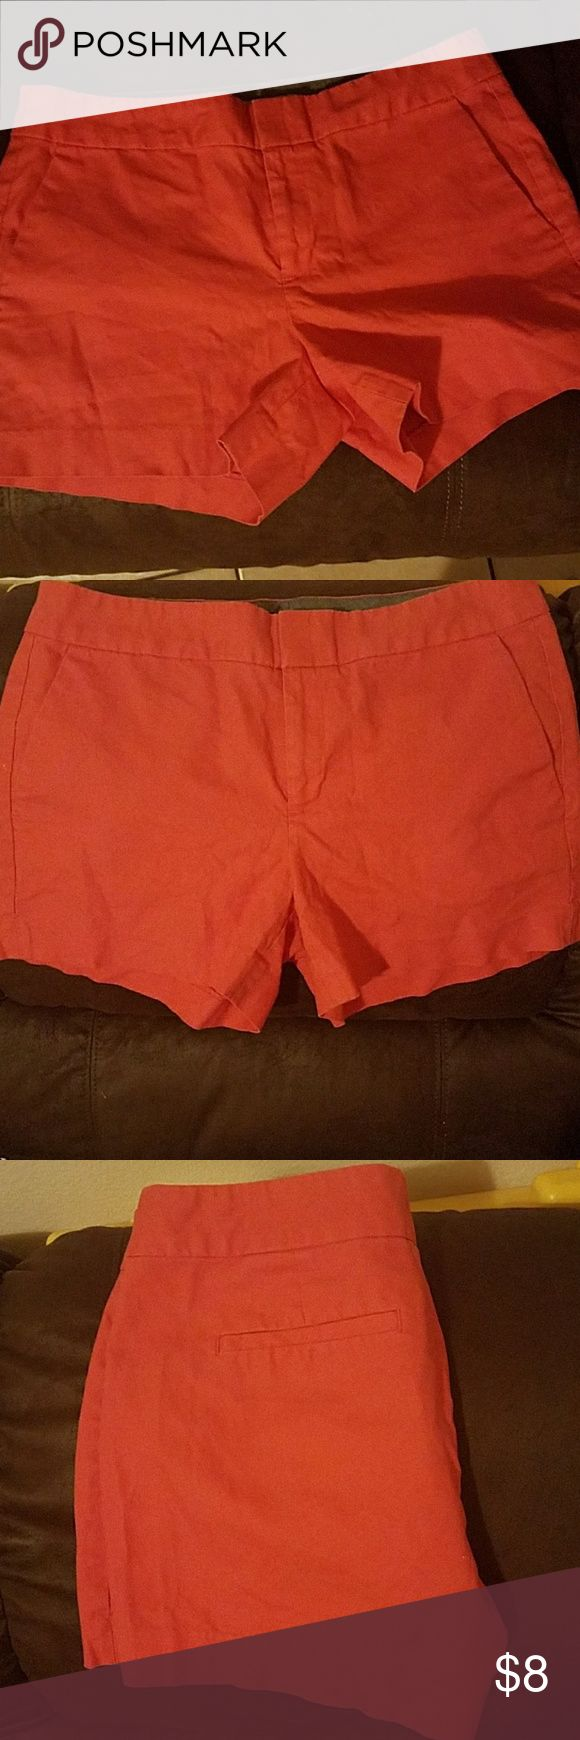 Banana republic size 8 dark peach color More on the orange peach color, perfect condition Banana Republic Shorts